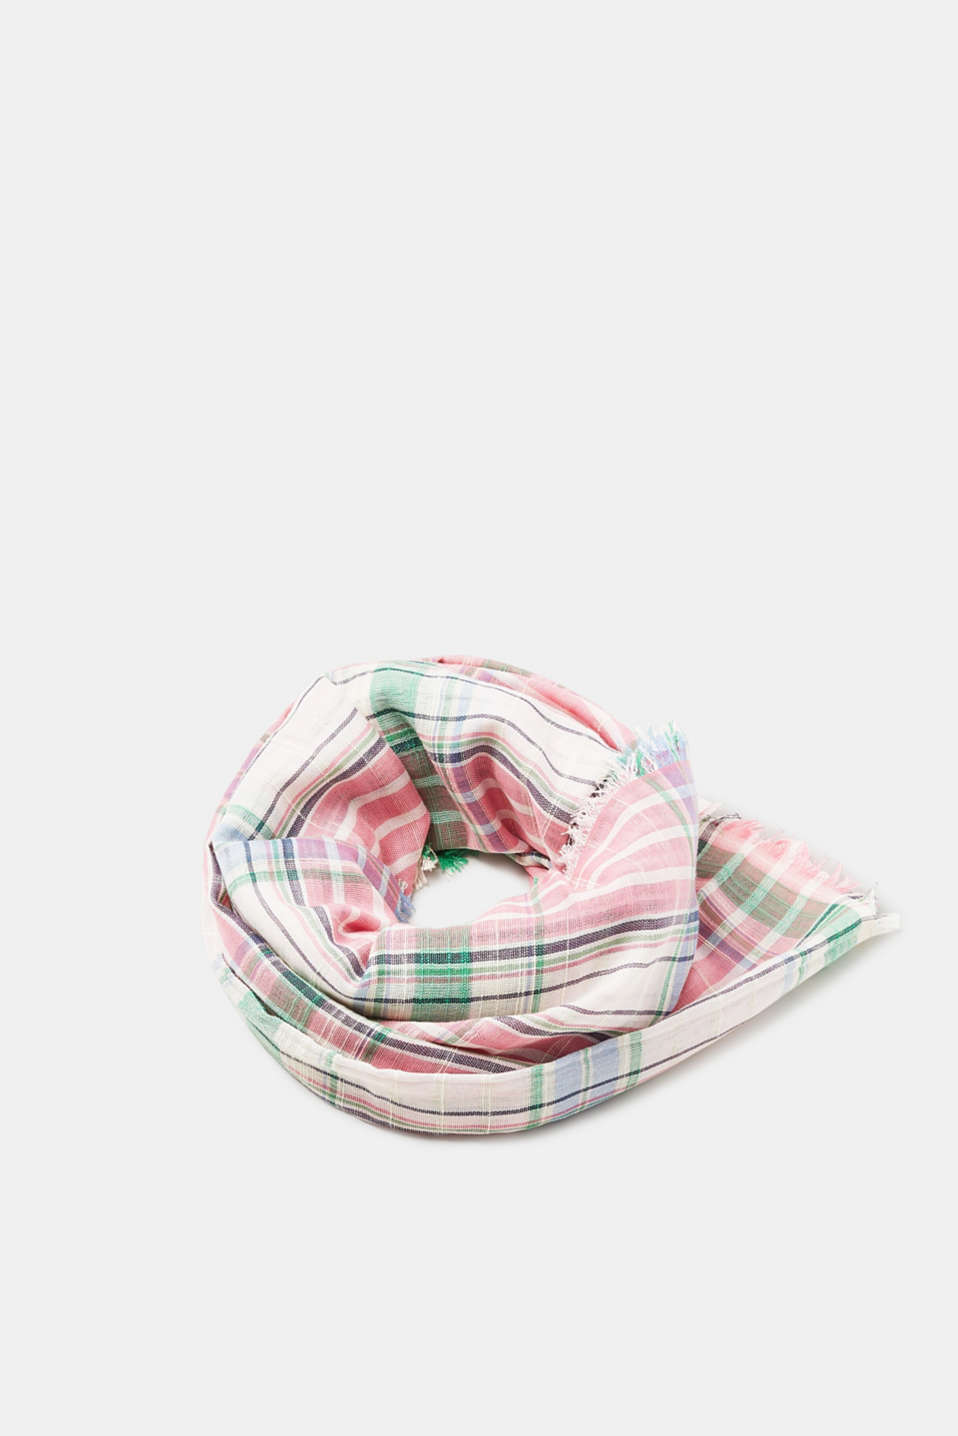 Esprit - Lightweight woven scarf with a feminine check pattern